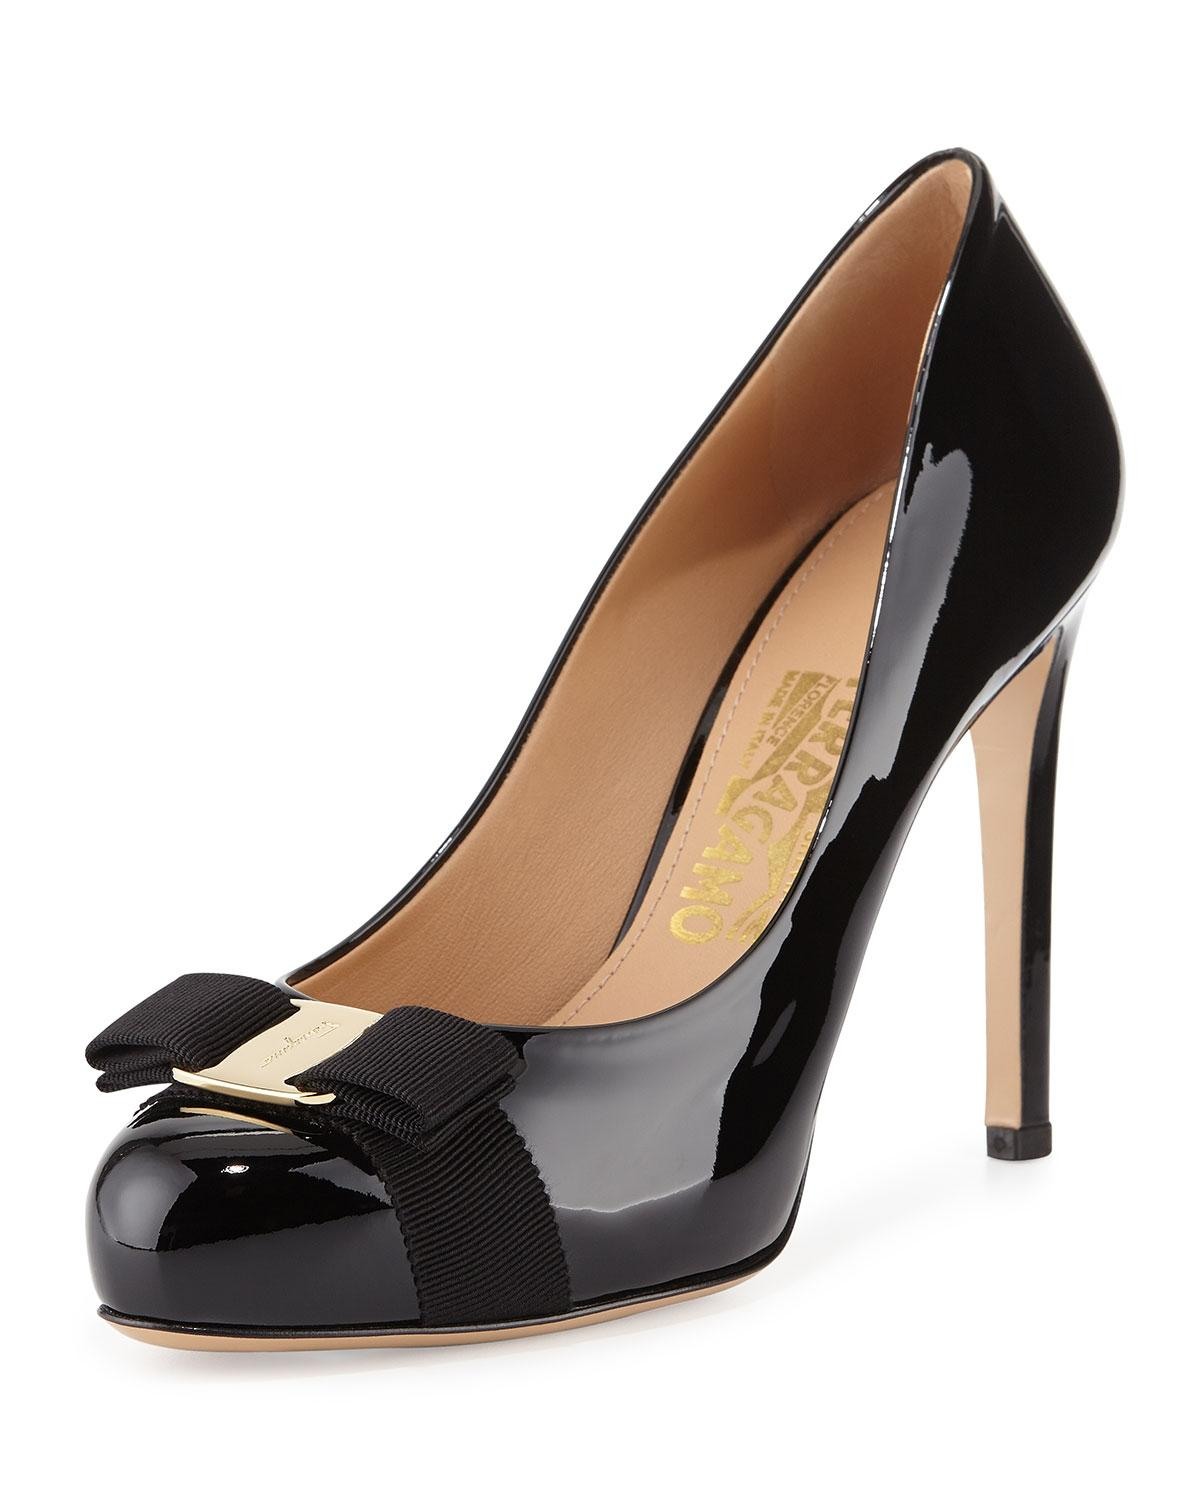 Salvatore Ferragamo Black New Pimpa Patent Bow B Pumps Size US 5 Regular (M, B)